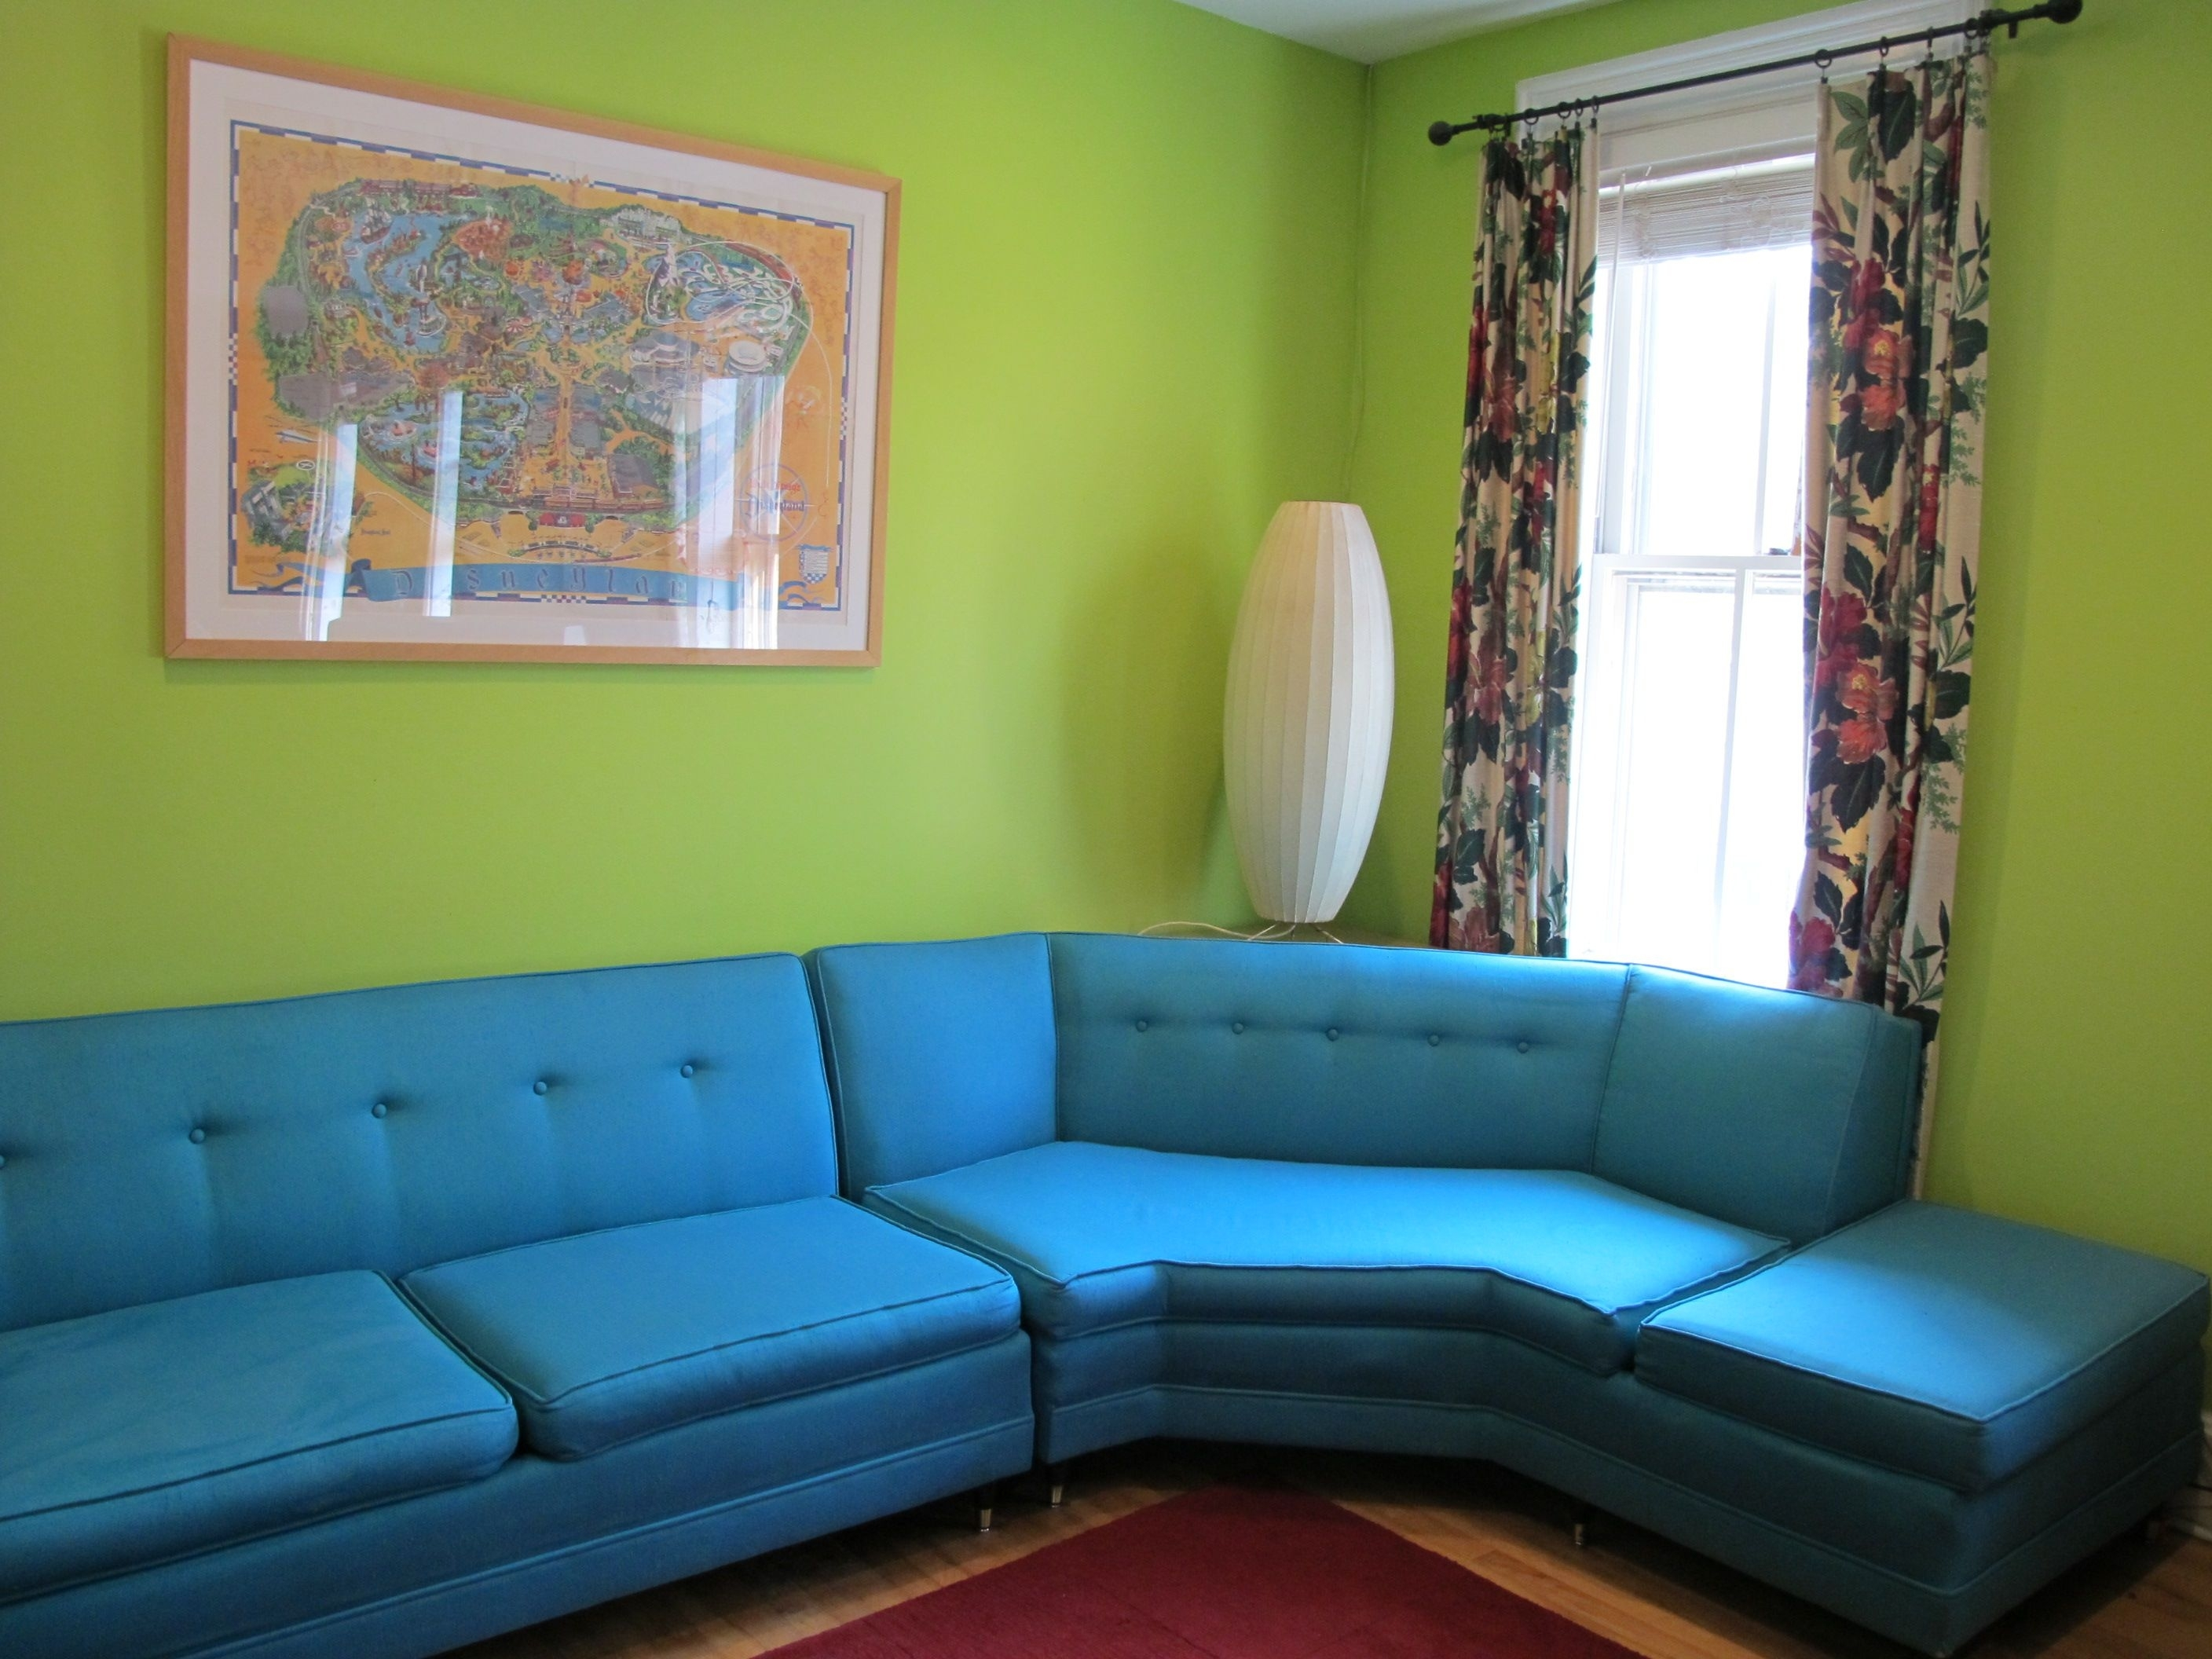 Aqua Sofa | Home Decor | Kitschy Goodness & Vintage | Pinterest Pertaining To Aqua Sofas (Image 2 of 10)